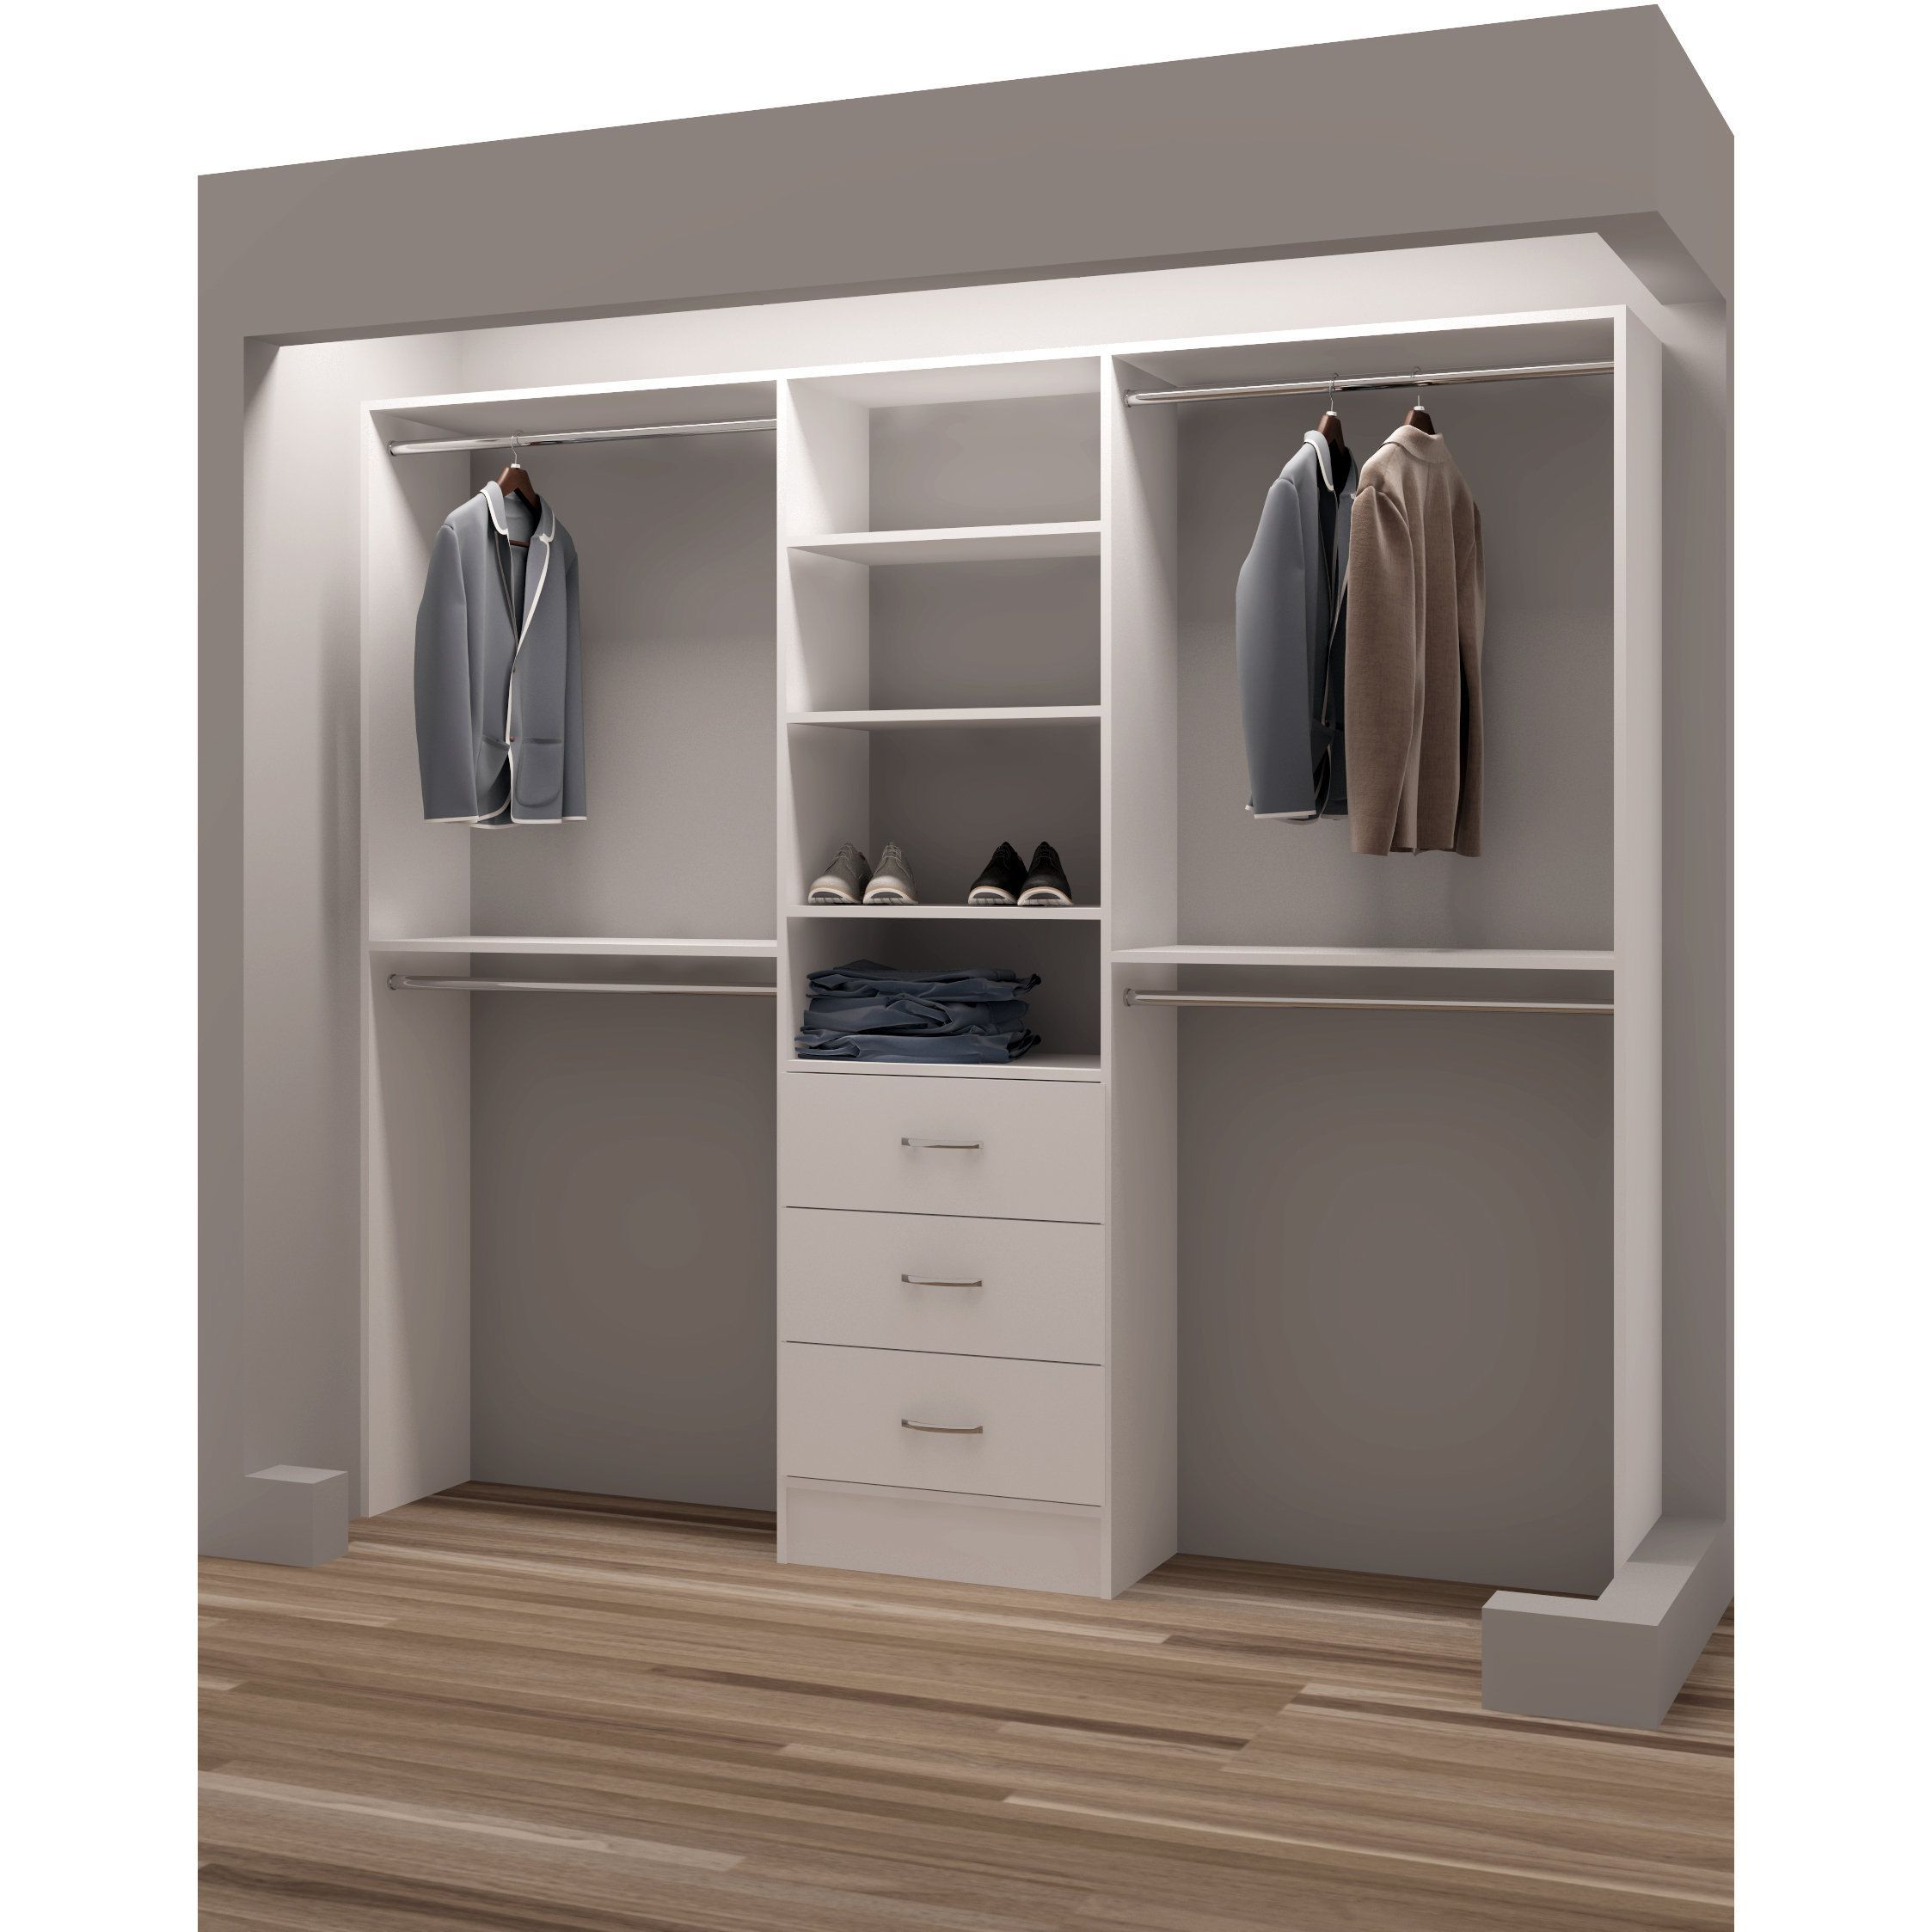 Reach In Closet Organization Ideas Part - 41: TidySquares Classic White Wood 87-inch Reach-in Closet Organizer (White)  (Chrome)